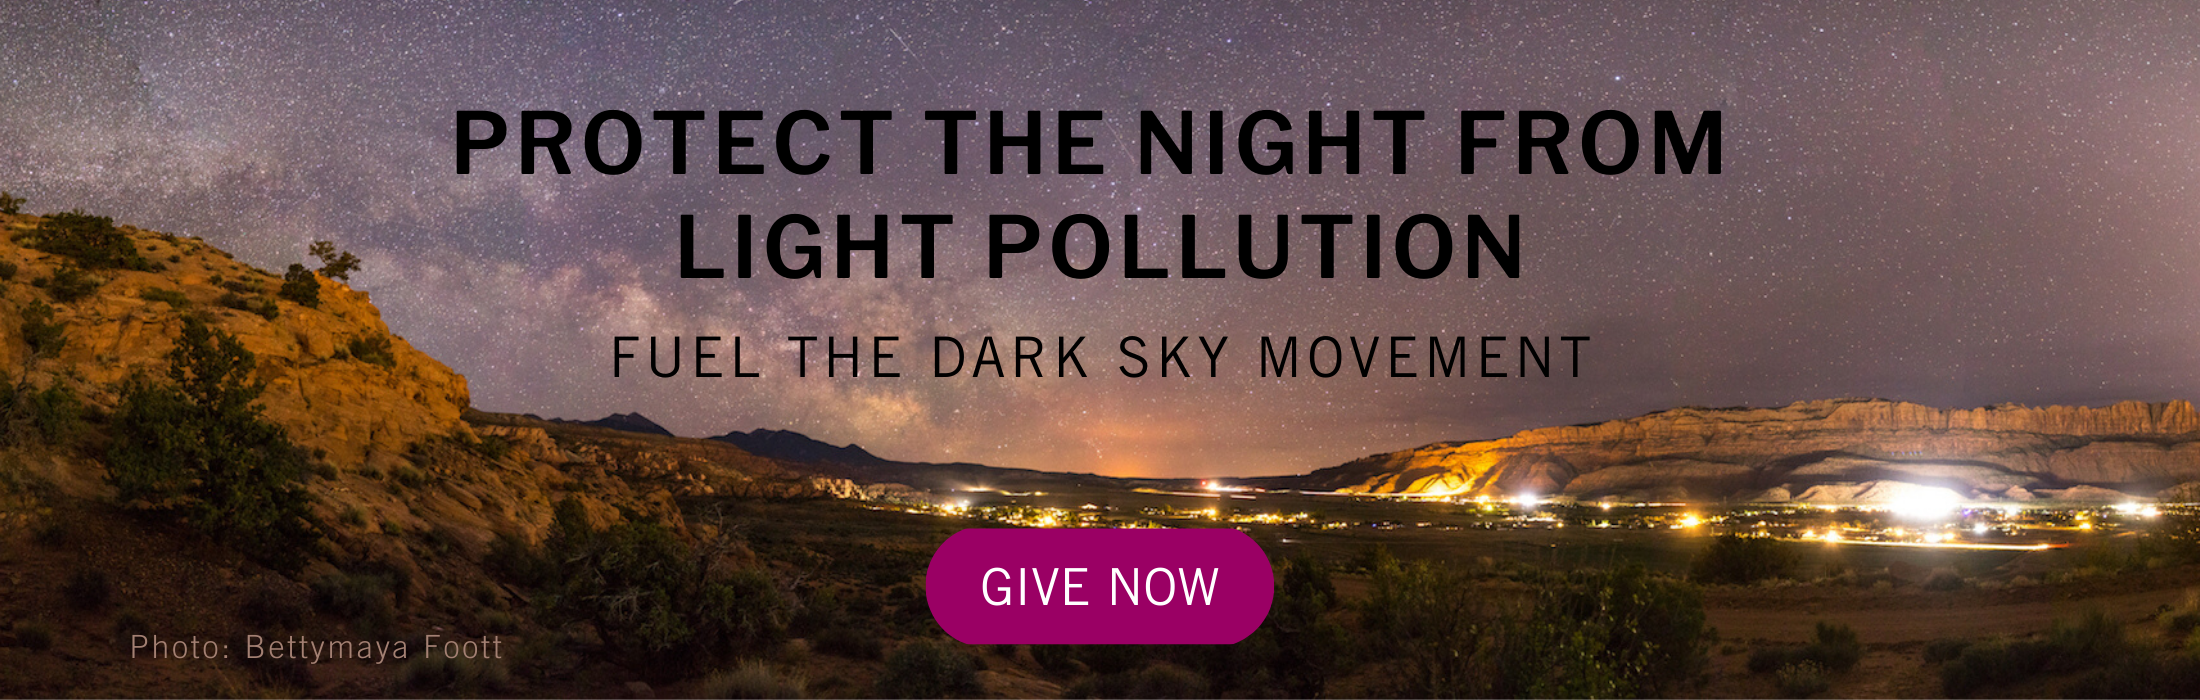 PROTECT THE NIGHT FROM LIGHT POLLUTION